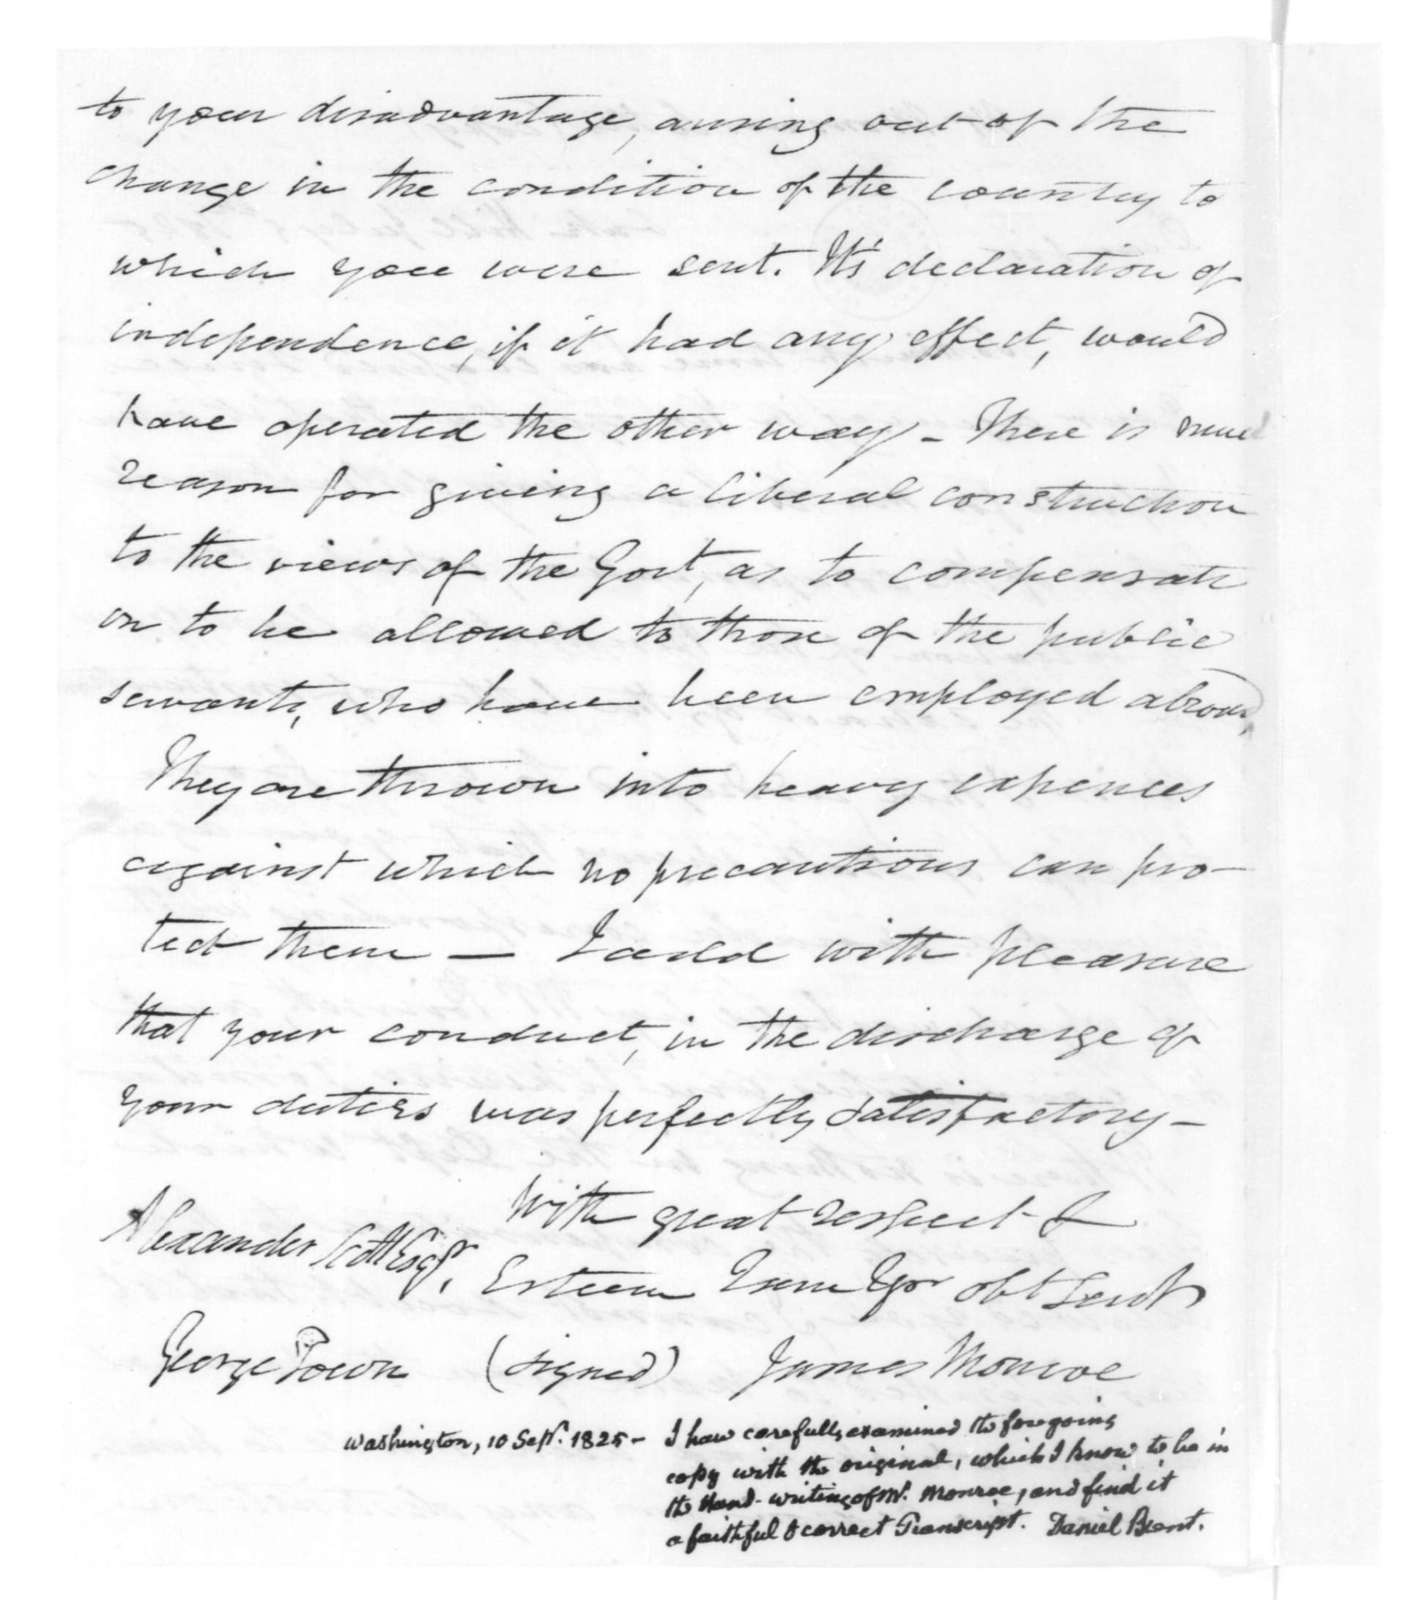 James Monroe to Alexander Scott, July 5, 1825. Includes a note from Daniel Brent dated Sept. 10, 1825.